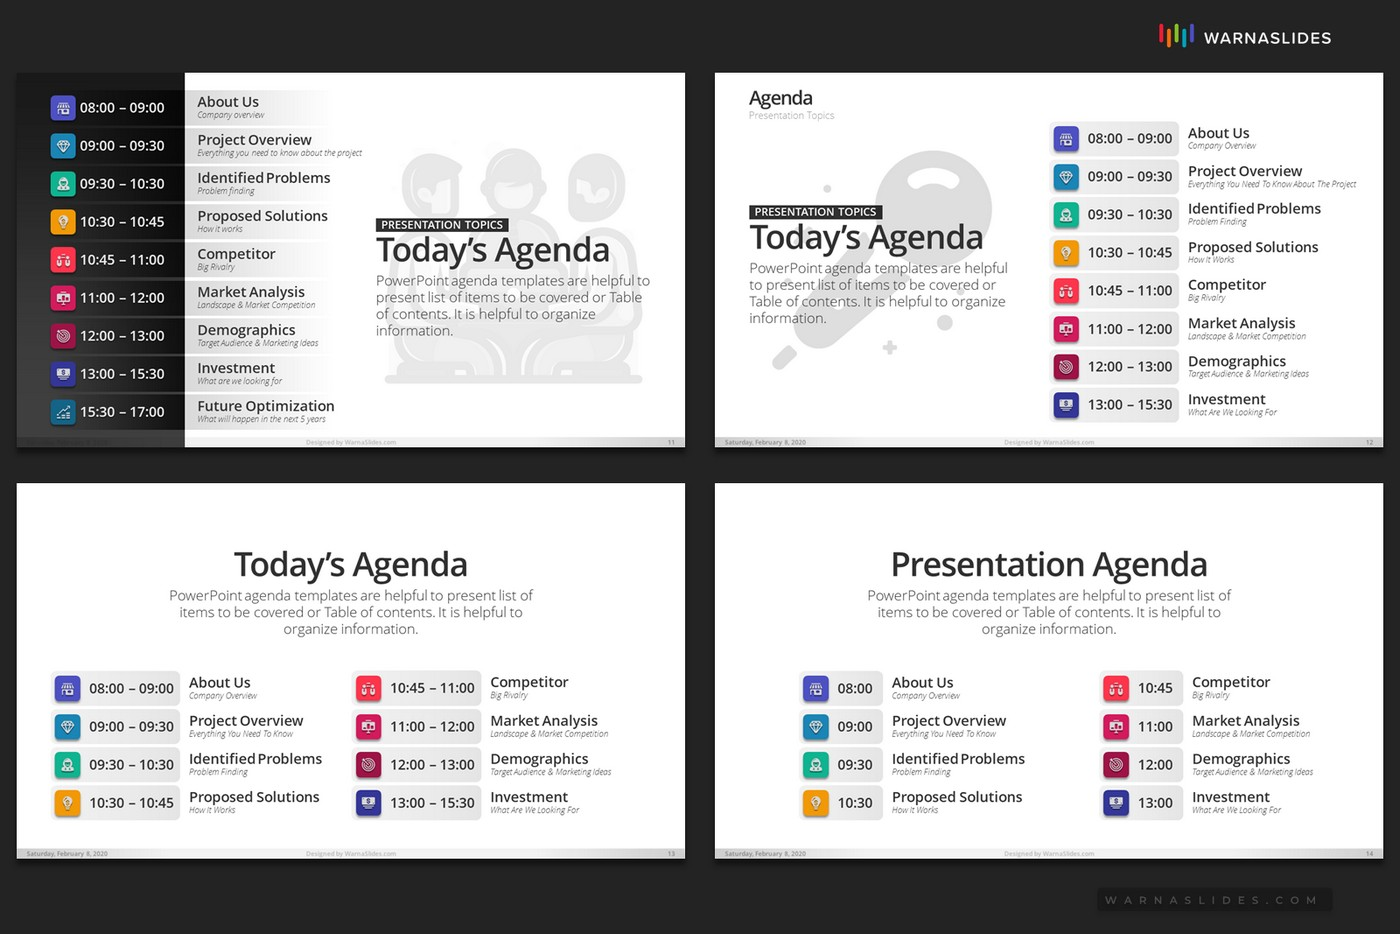 Agenda-Meeting-PowerPoint-Template-2020-for-Business-Pitch-Deck-Professional-Creative-Presentation-by-Warna-Slides-007